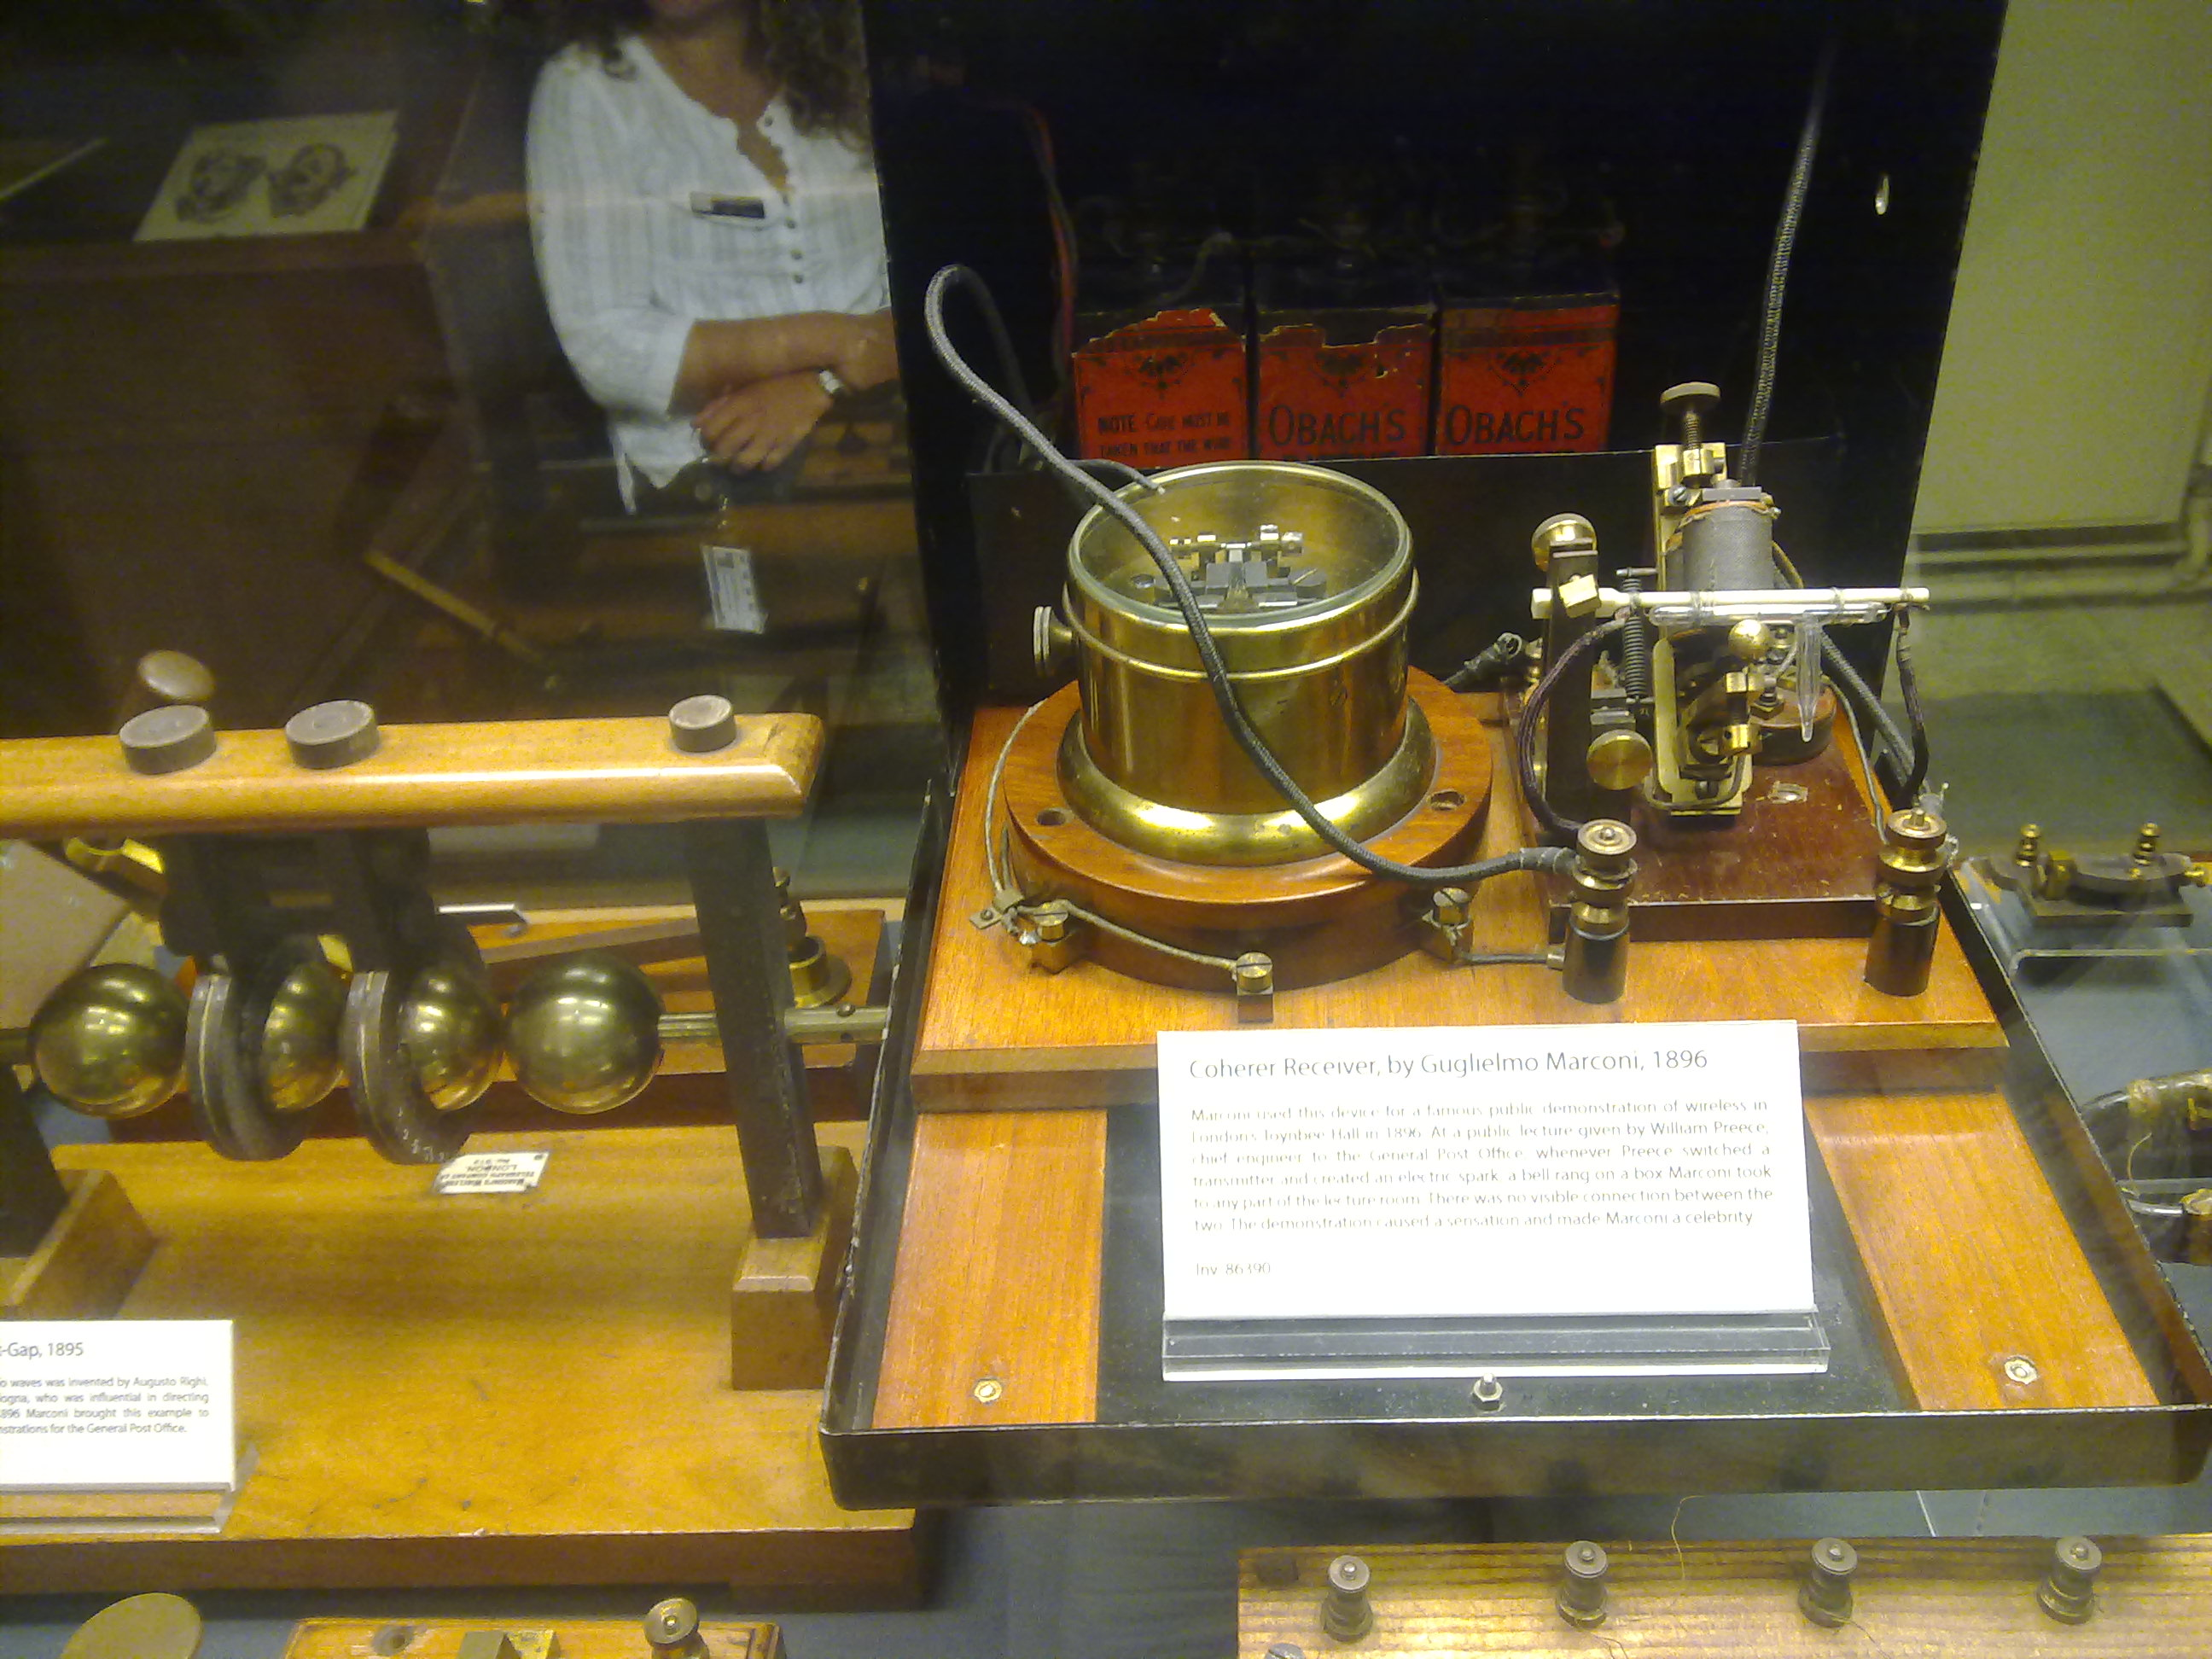 Marconi's receiver